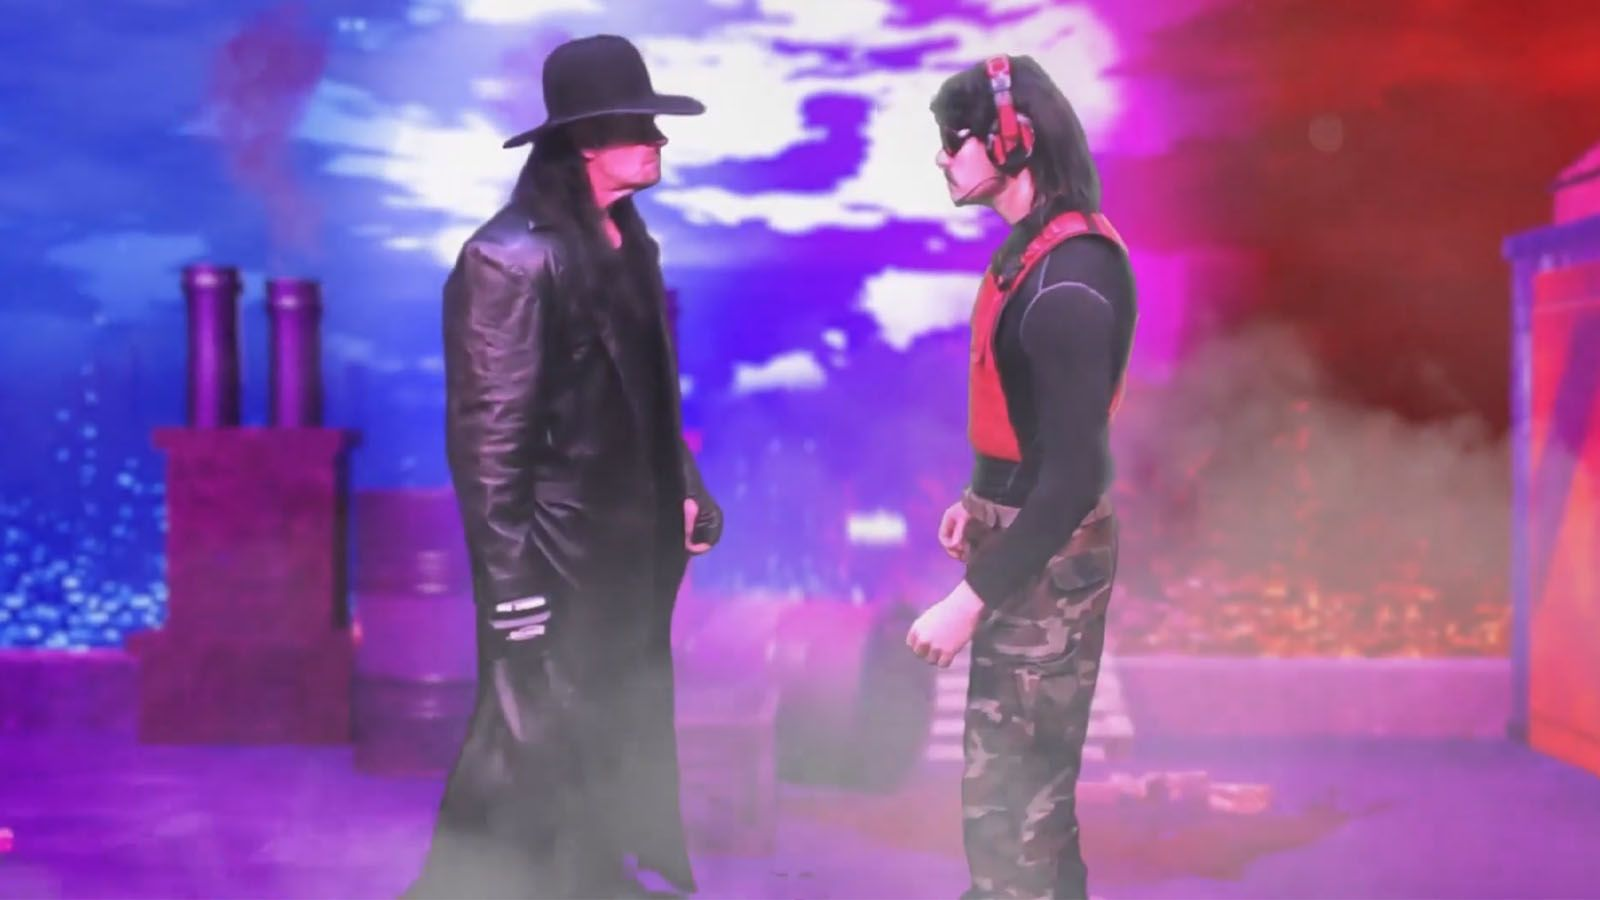 Dr Disrespect and The Undertaker face off